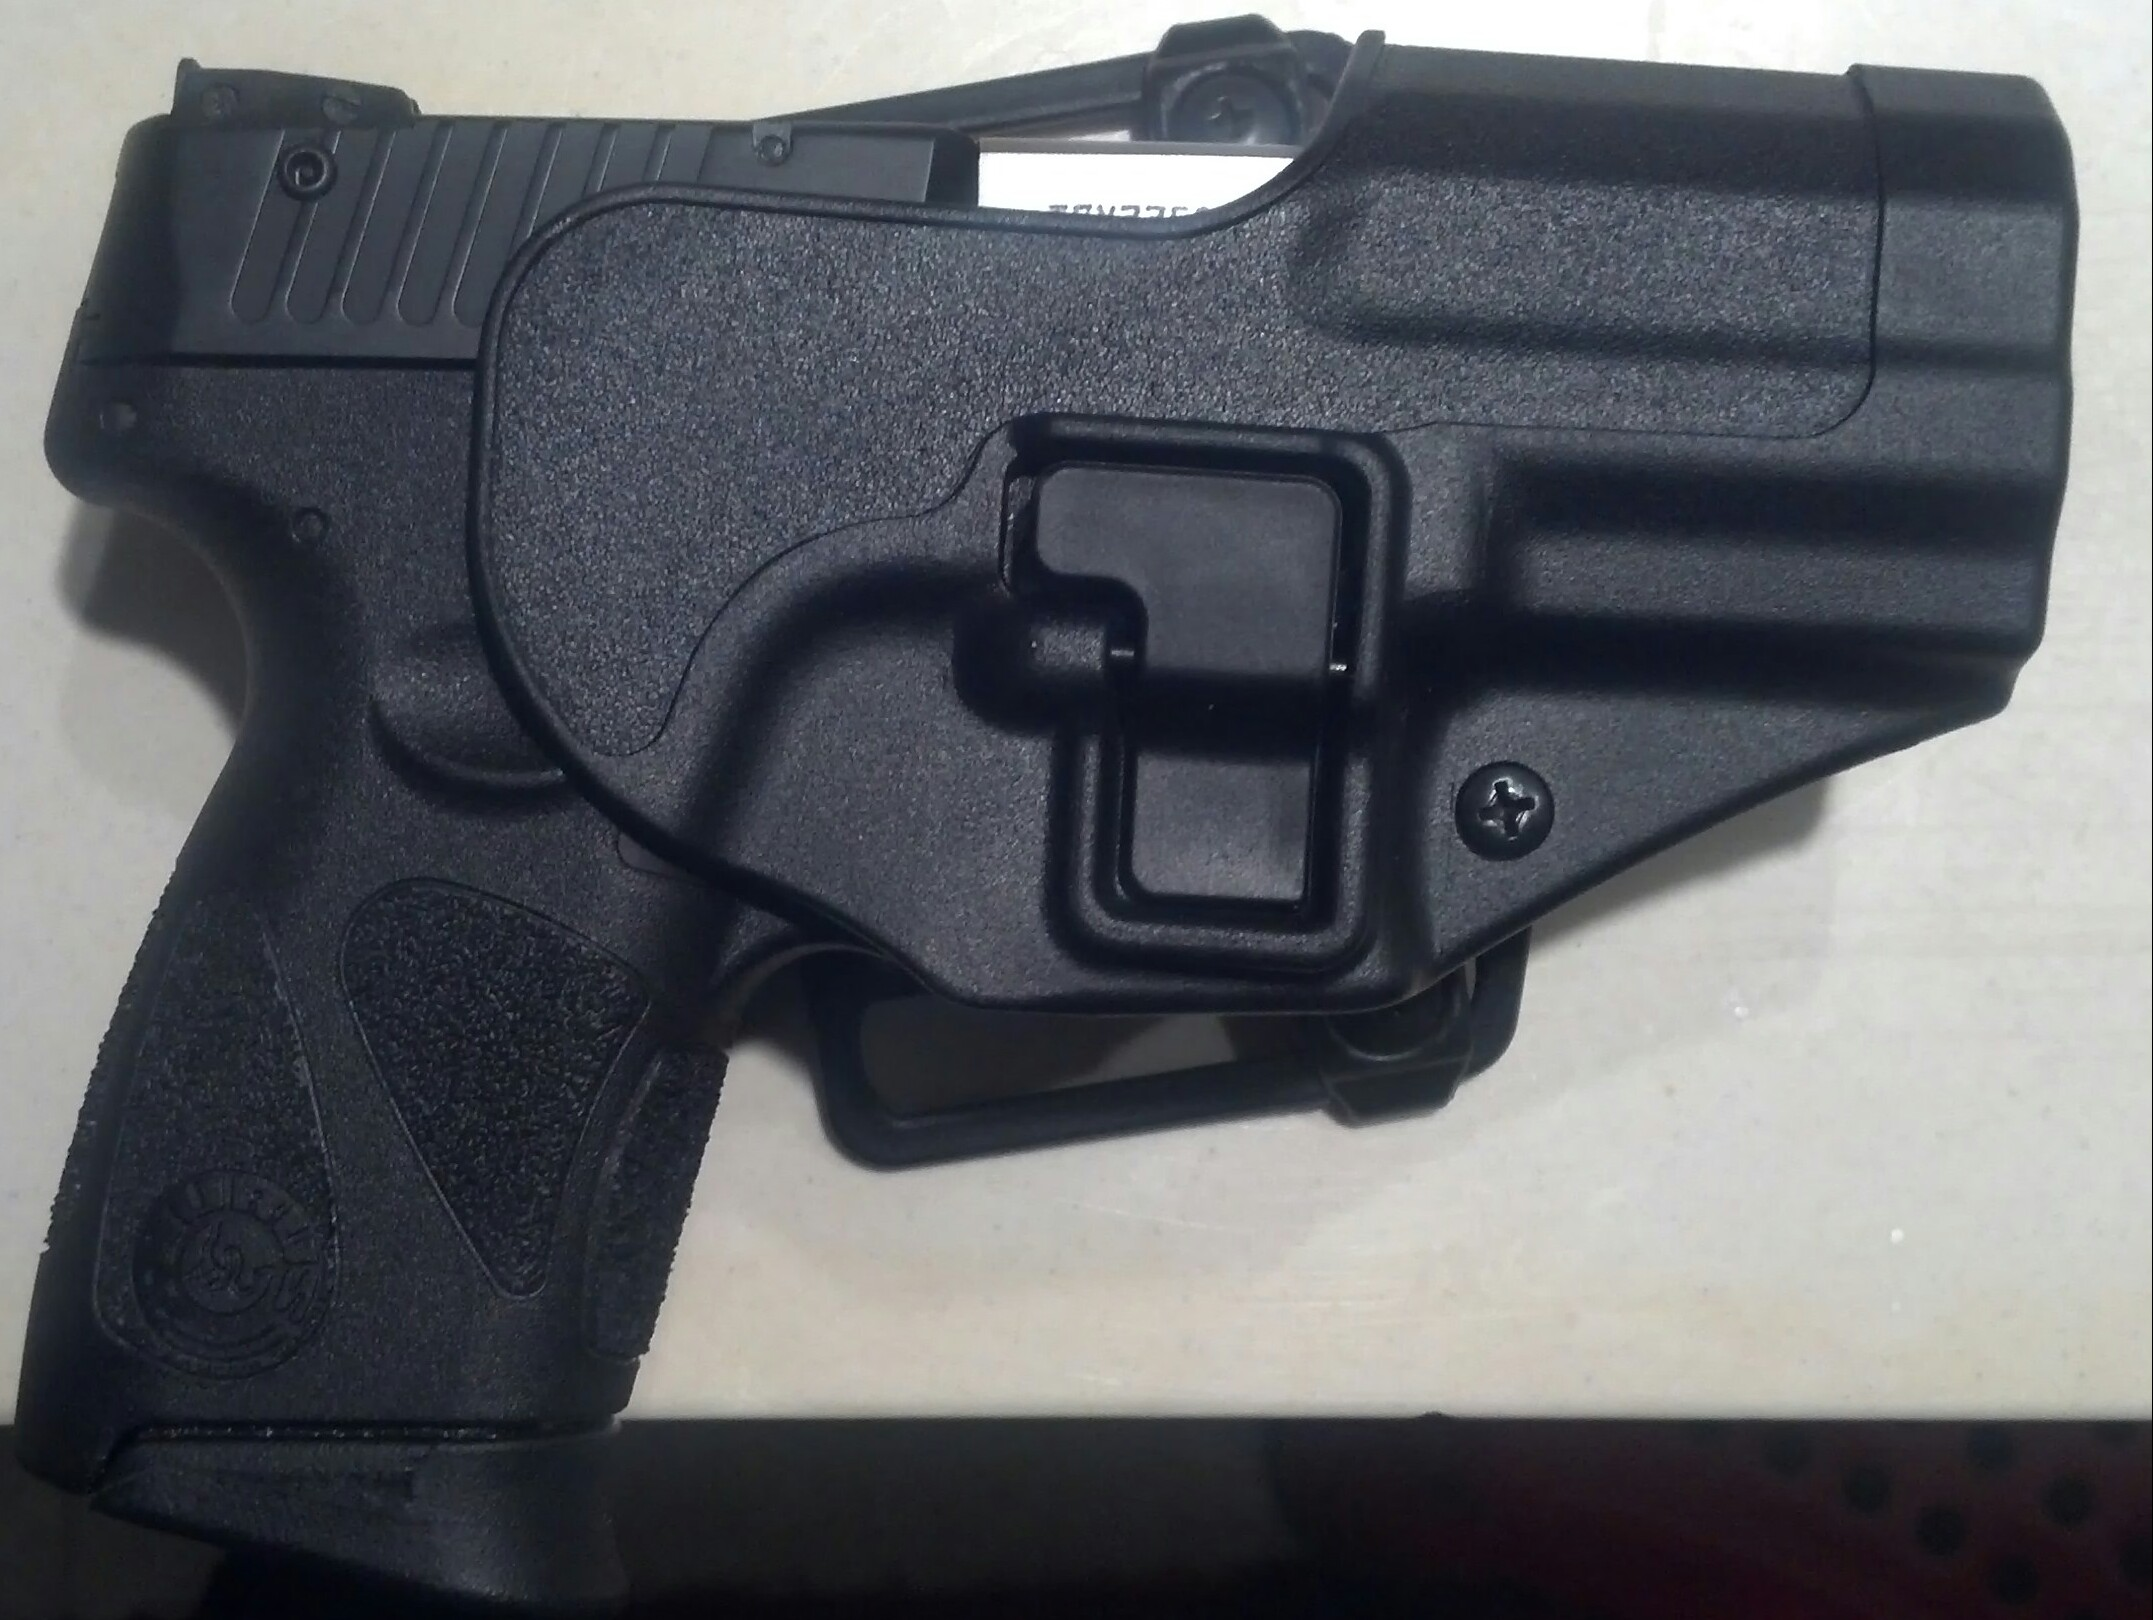 pt111  milli g2 ccw holster and sights